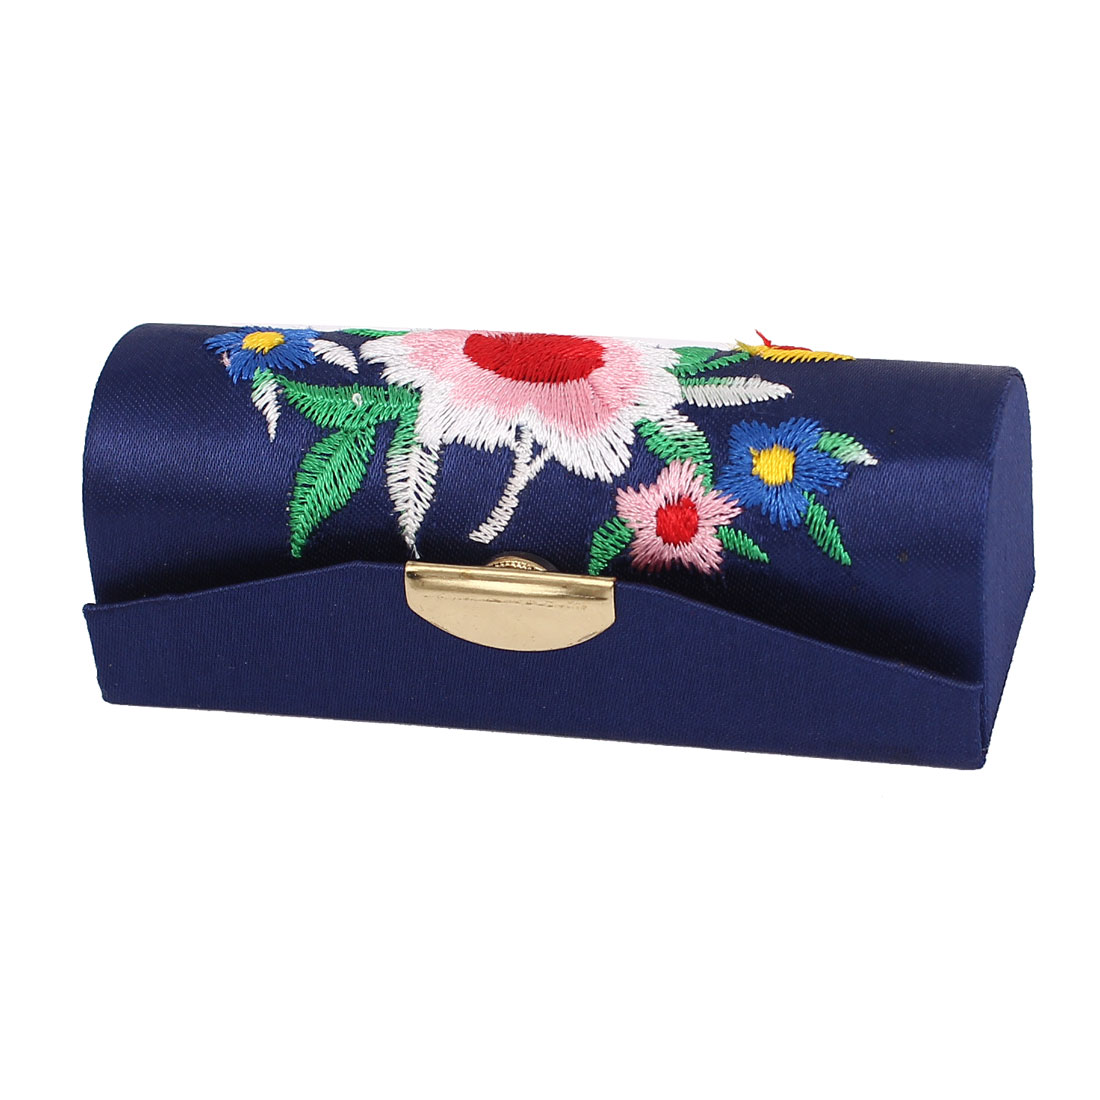 Cinese Style Floral Design Blue Lipstick Lip Chap Stick Case Jewelry Holder Box w Mirror